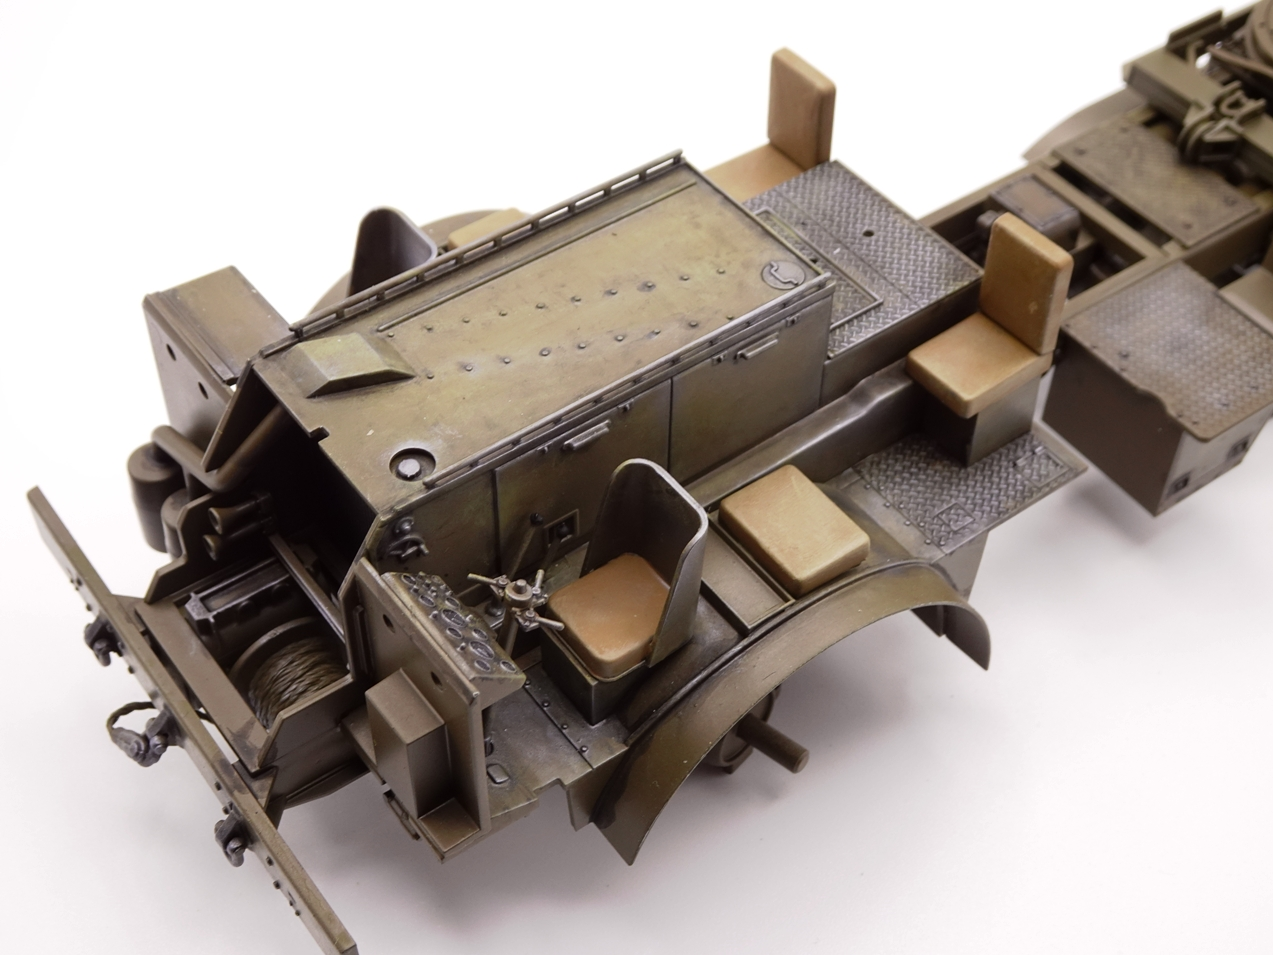 [Tamiya 1/35] M26 Armored tank recovery vehicle réf. 35244 - Page 2 M26-1110-1